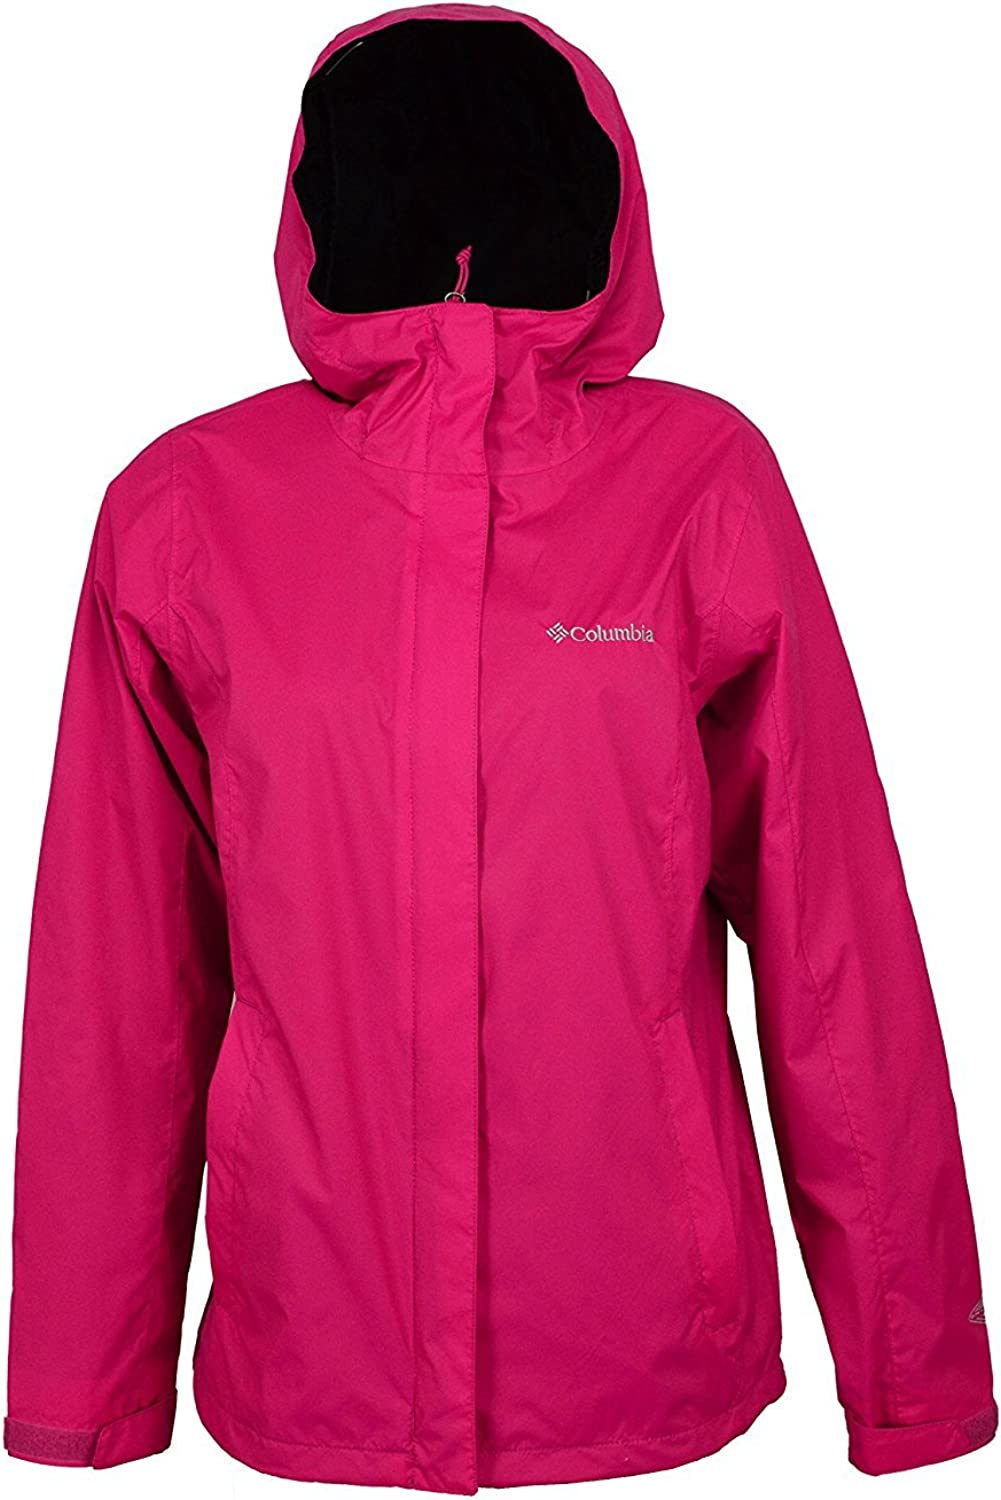 Columbia Timber Pointe OmniTech Womens Waterproof Jacket Pink